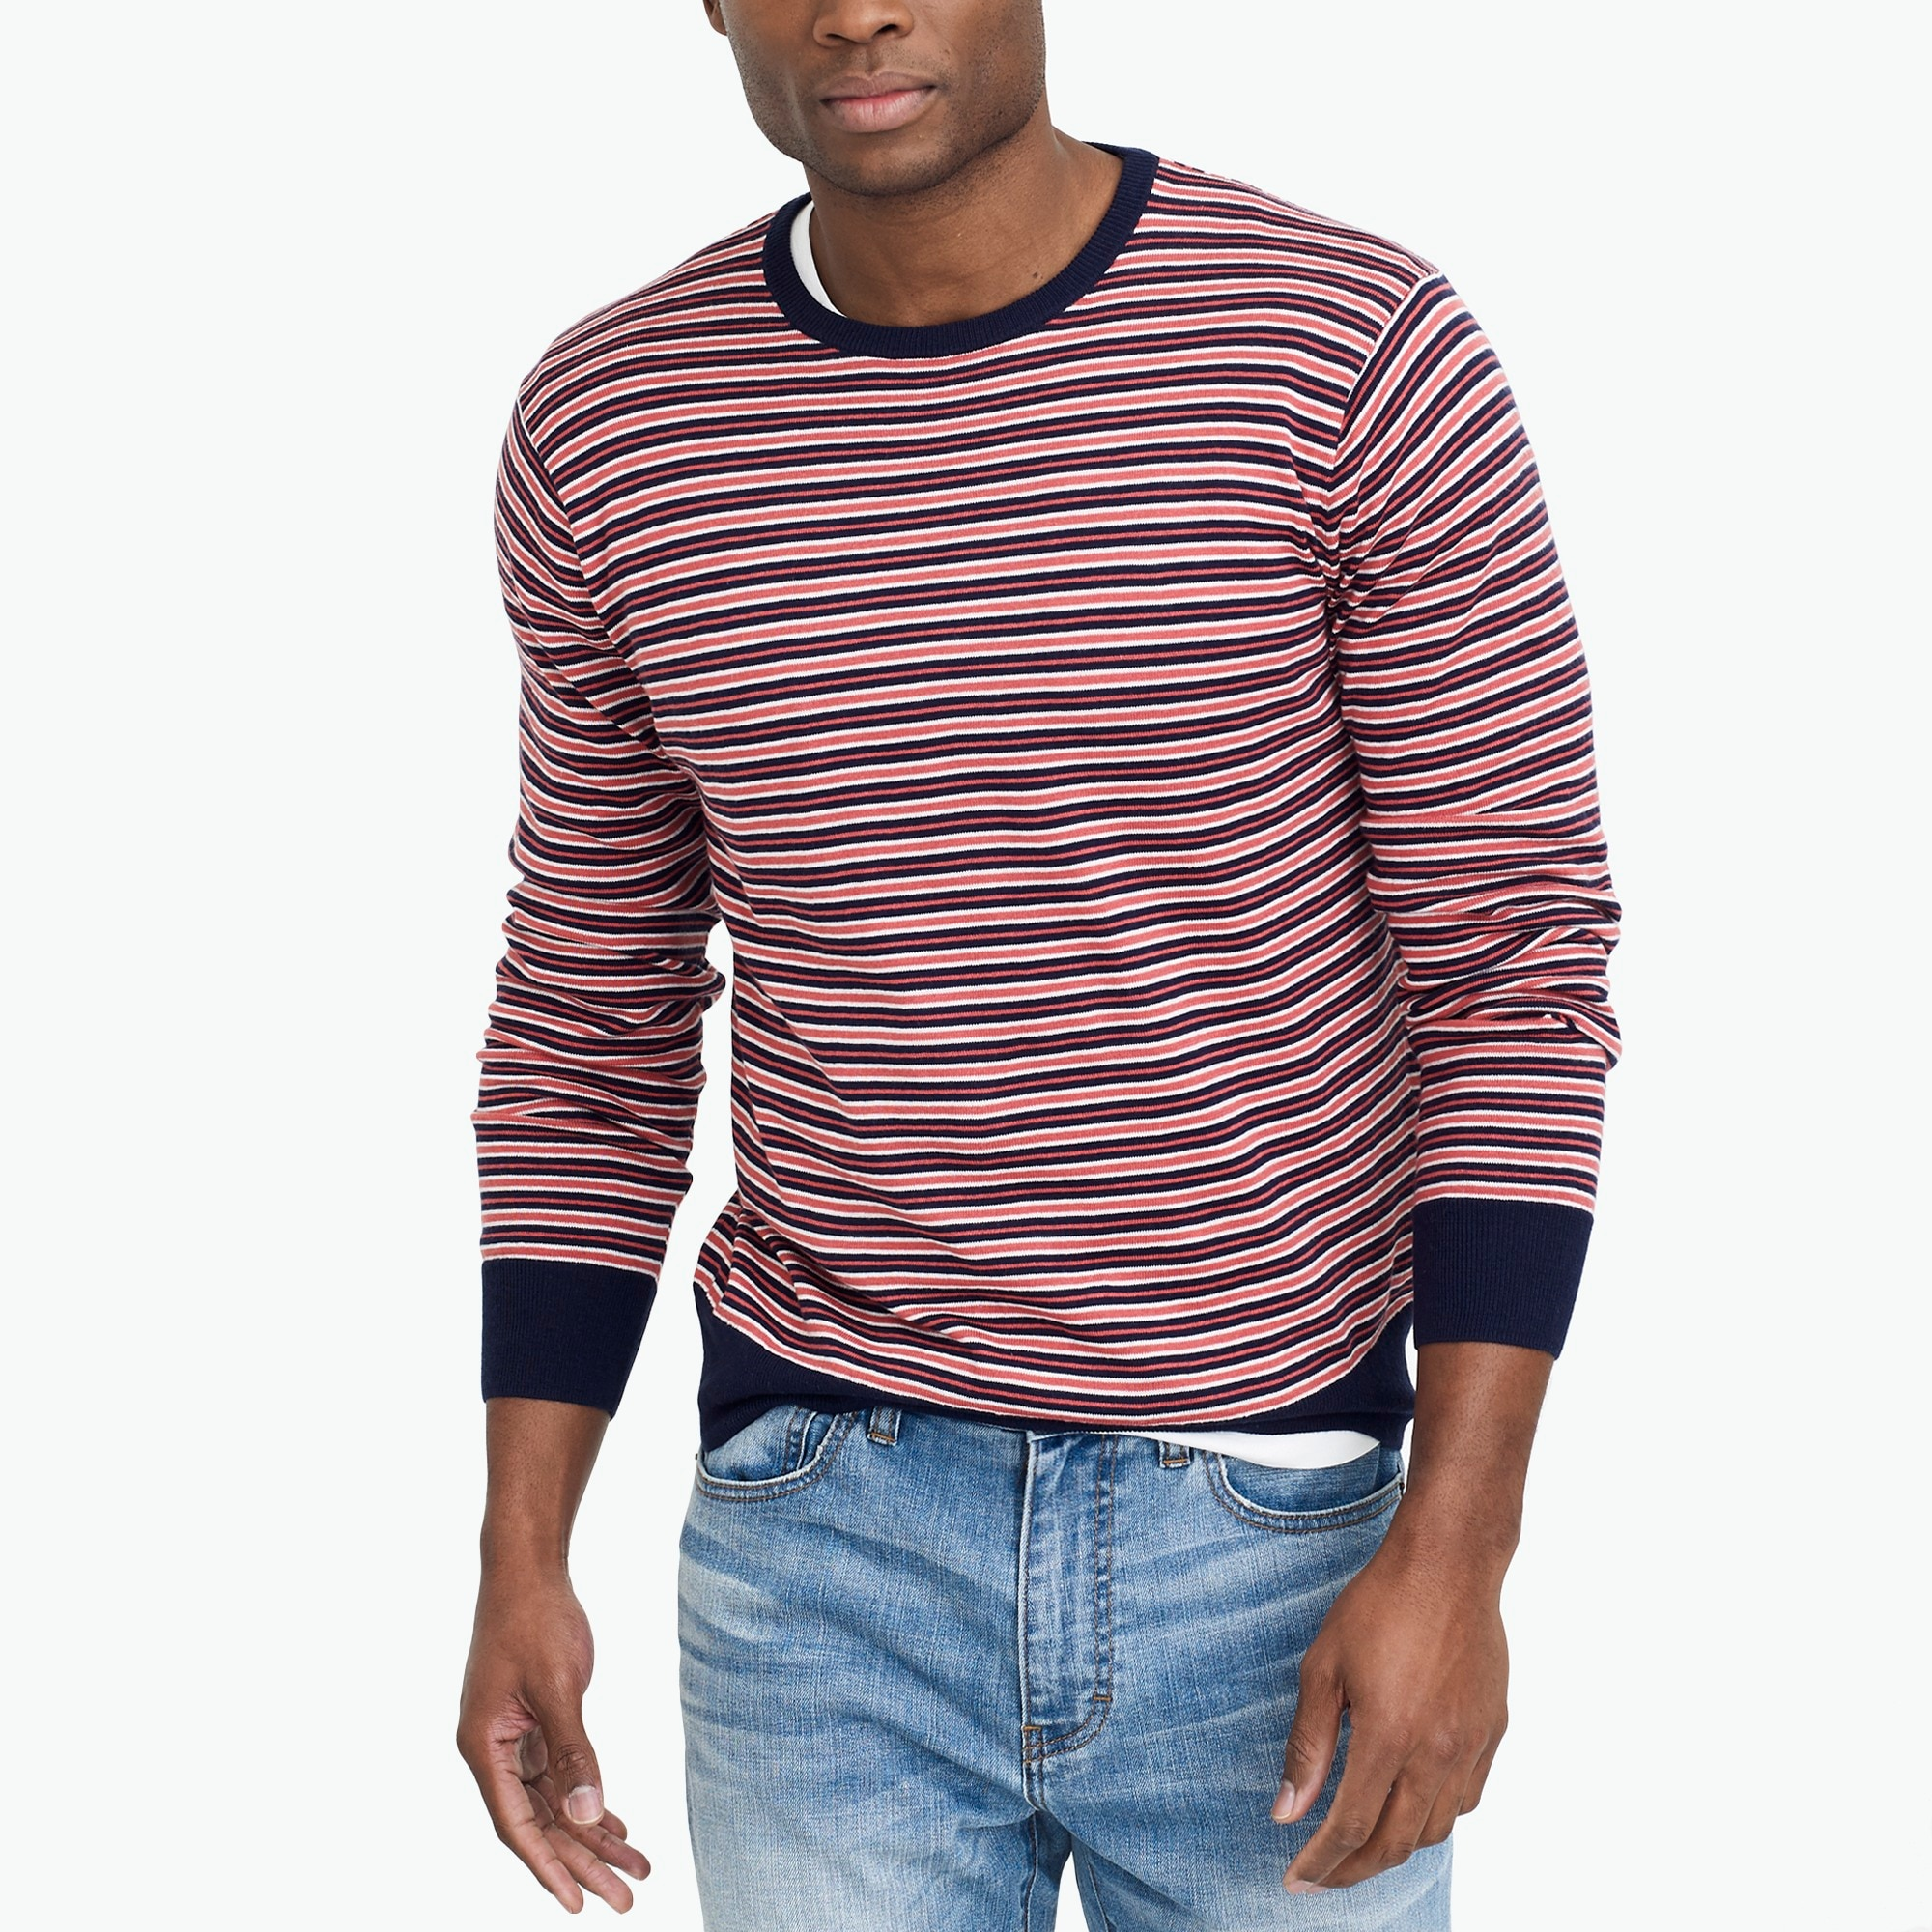 Cotton-linen striped crewneck sweater factorymen sweaters c